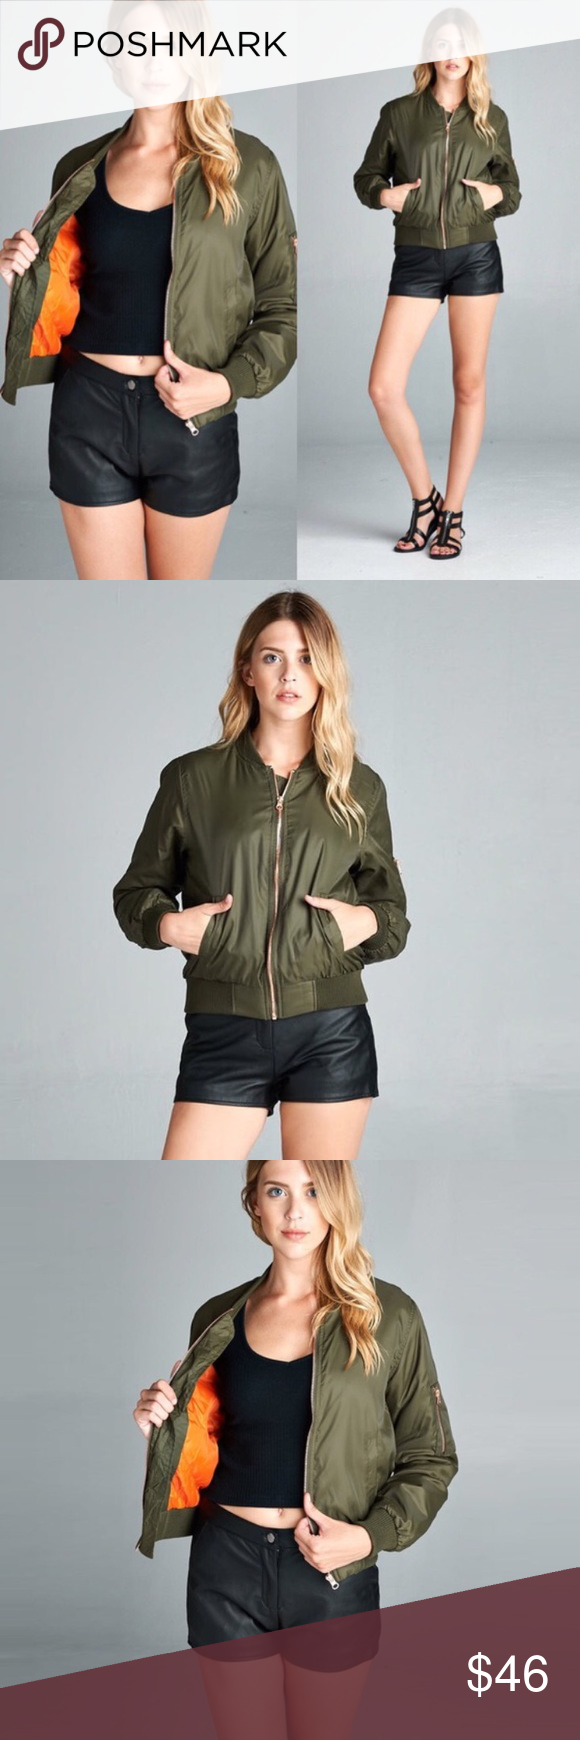 Olive Medium Weight Bomber Jacket This medium weight fall bomber jacket is a go to item to complete any simple outfit. Featuring rose gold zipper, ribbed accents, and a zip up arm pocket.   🚫No trades please. If you have any questions about this item I will be more than happy to answer them. Jackets & Coats